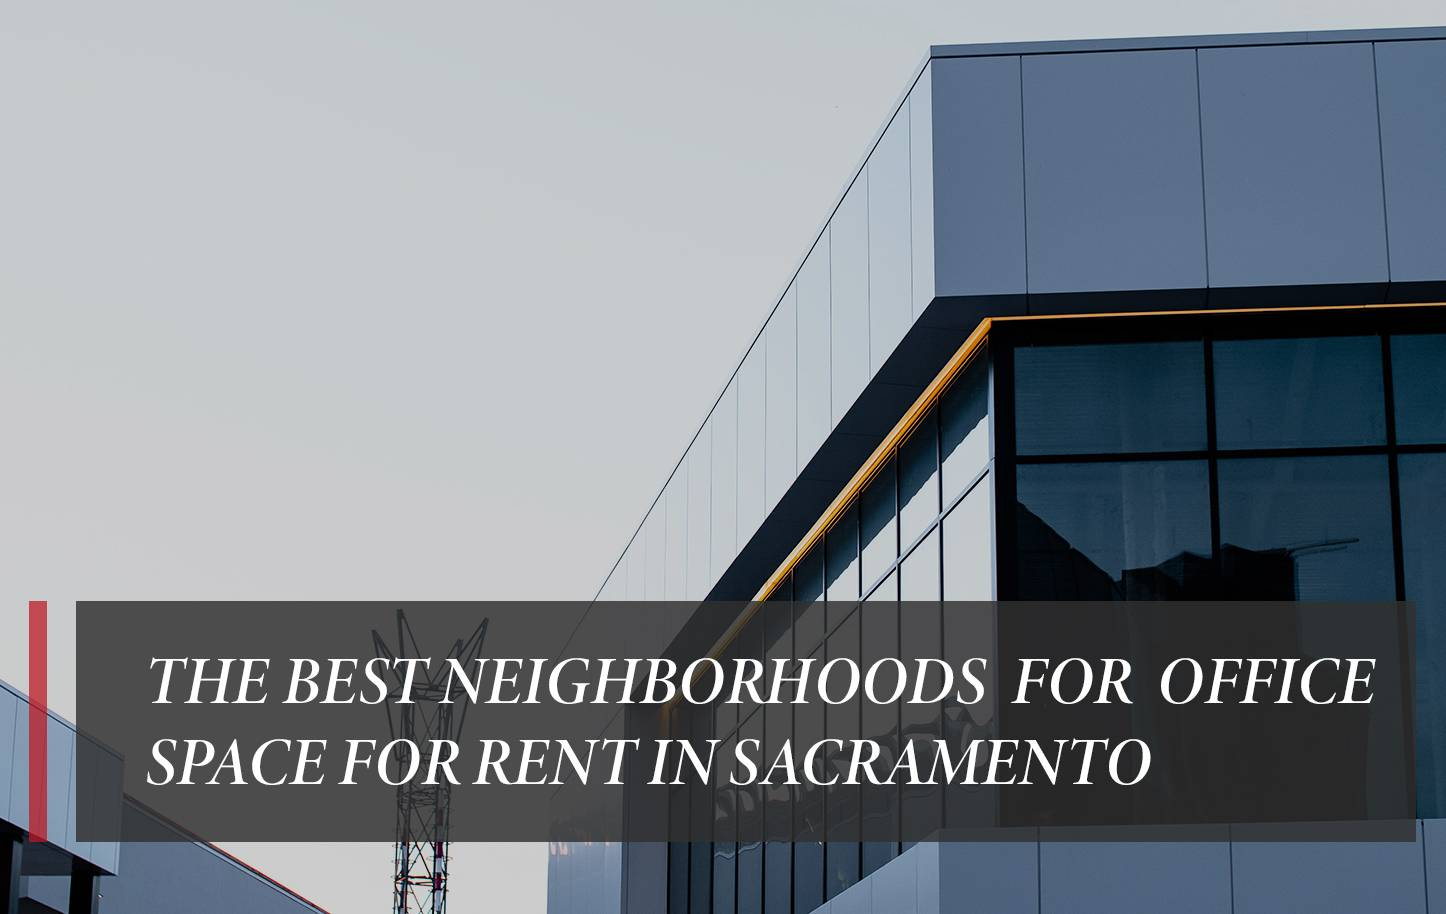 The best neighborhoods for office space for rent in Sacramento